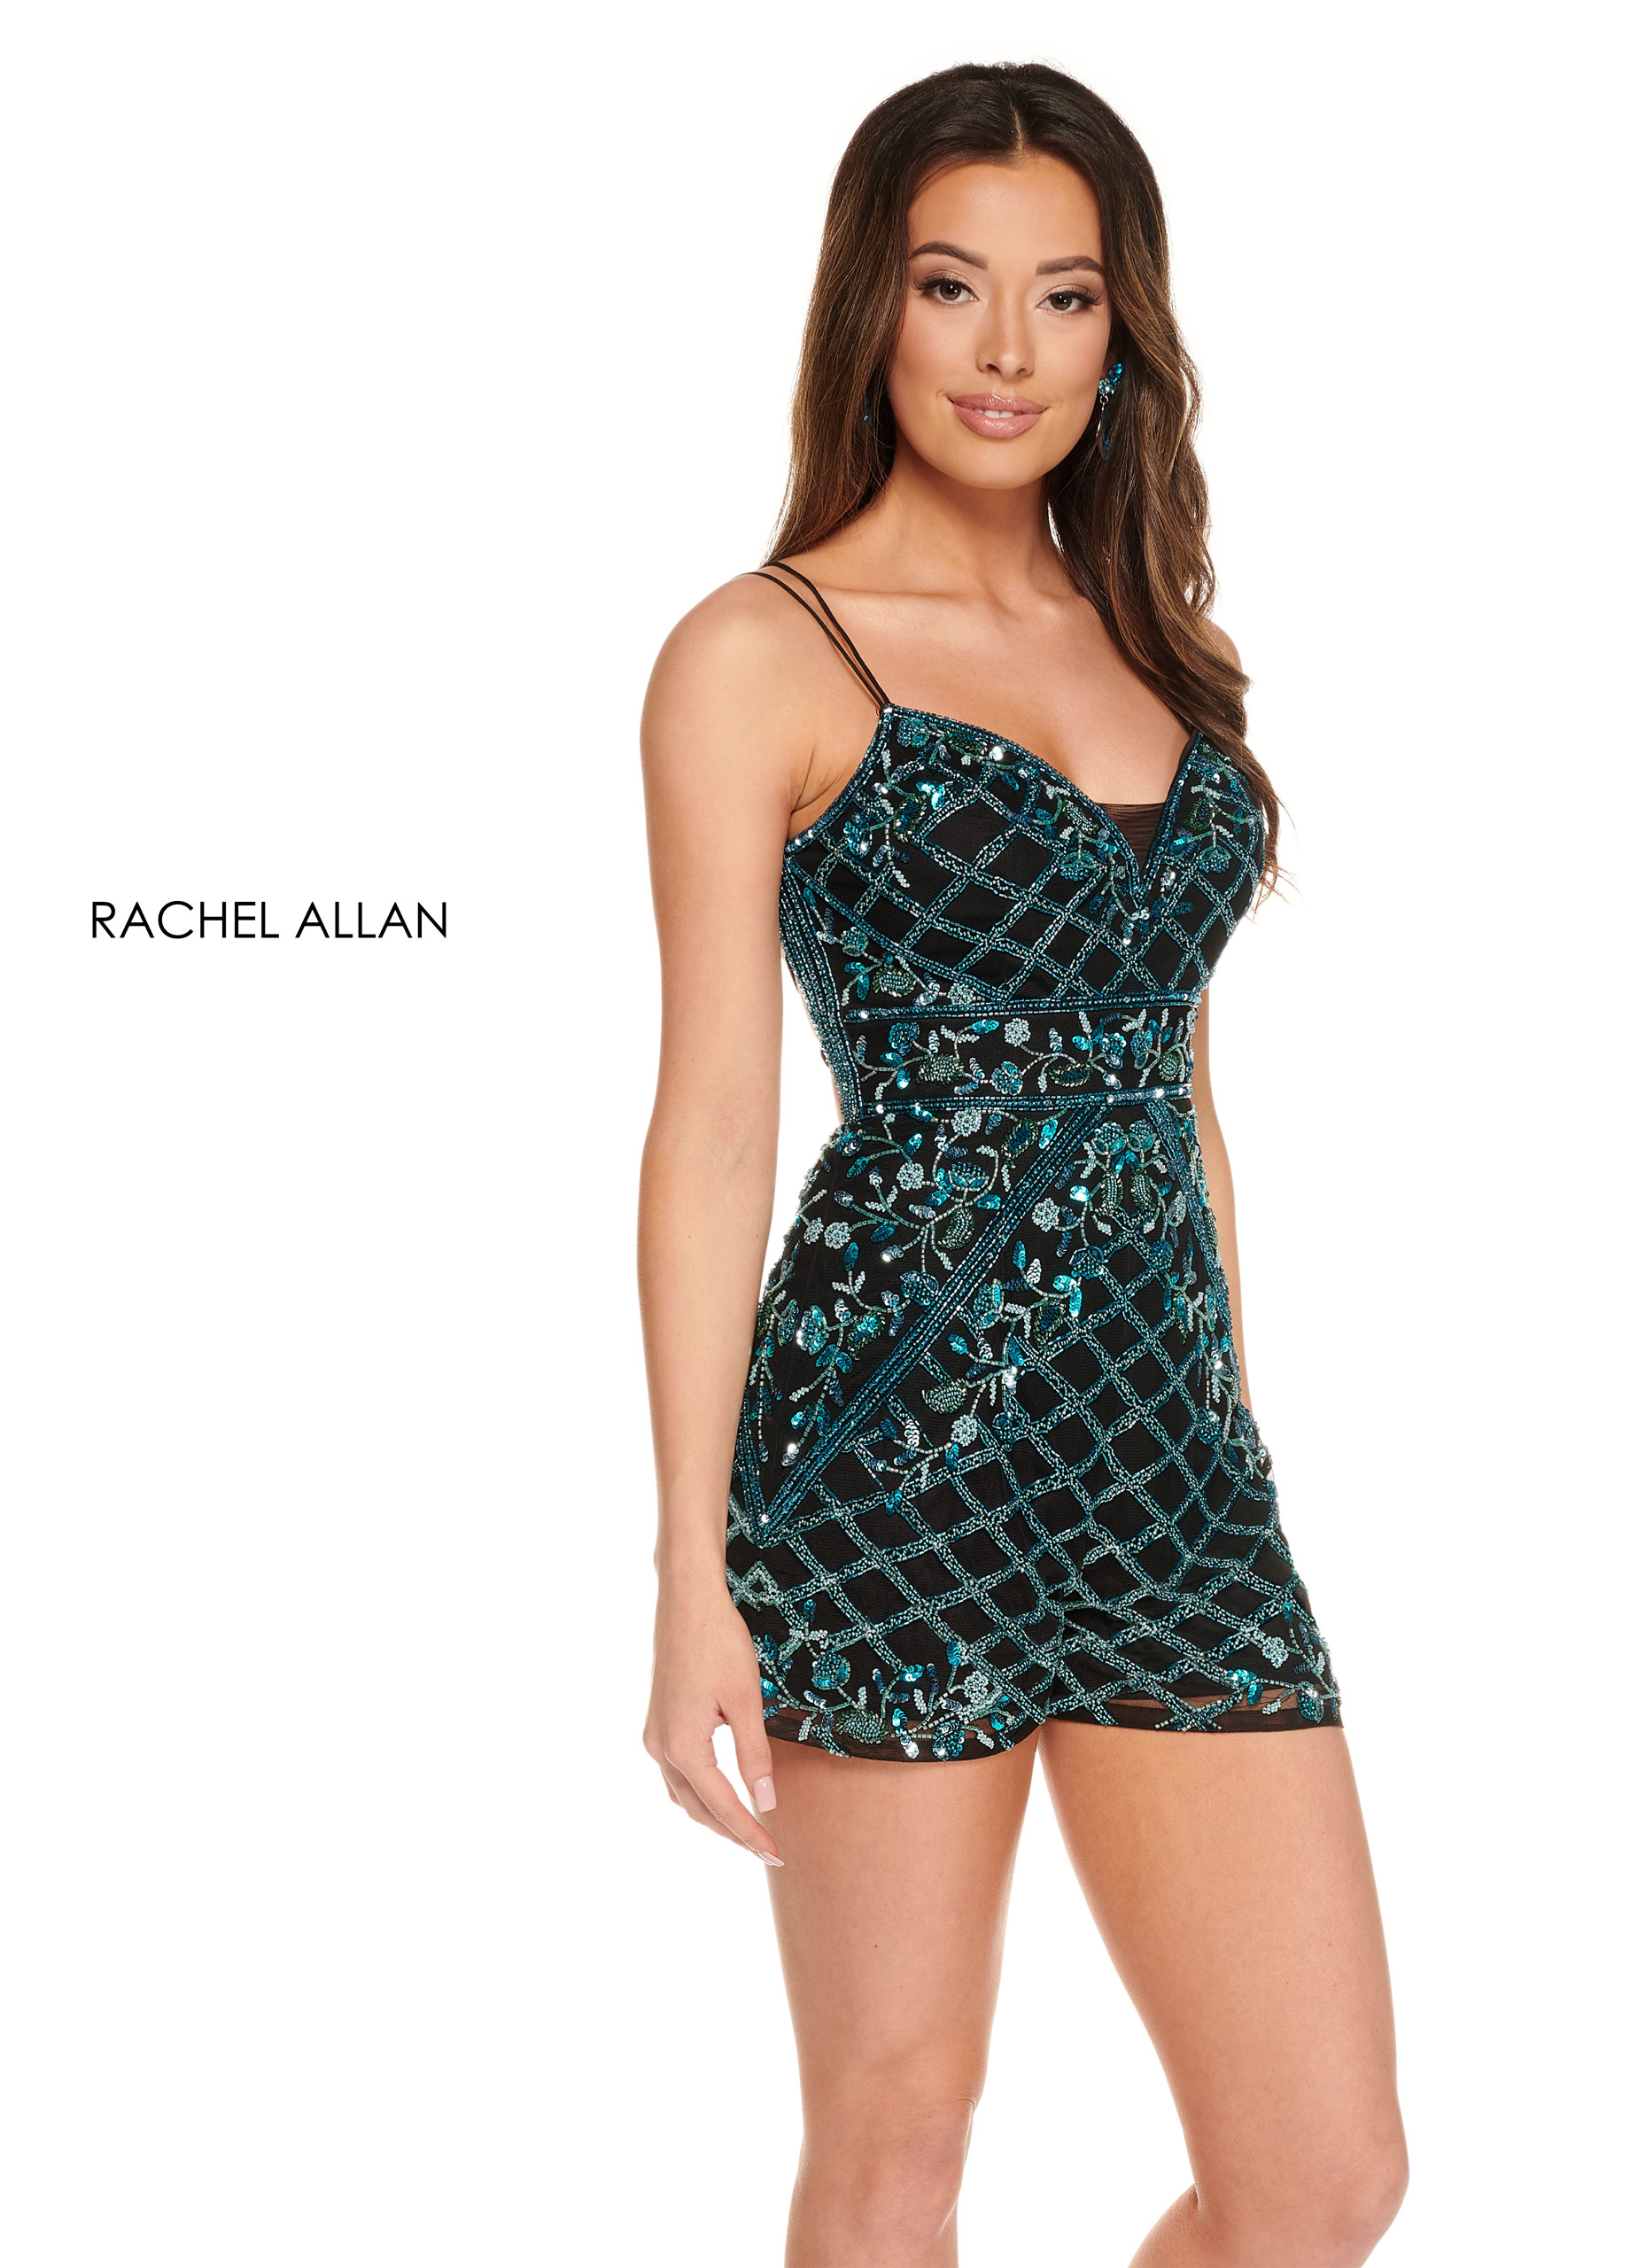 V-Neck Romper Homecoming Dresses in Turquoise Color